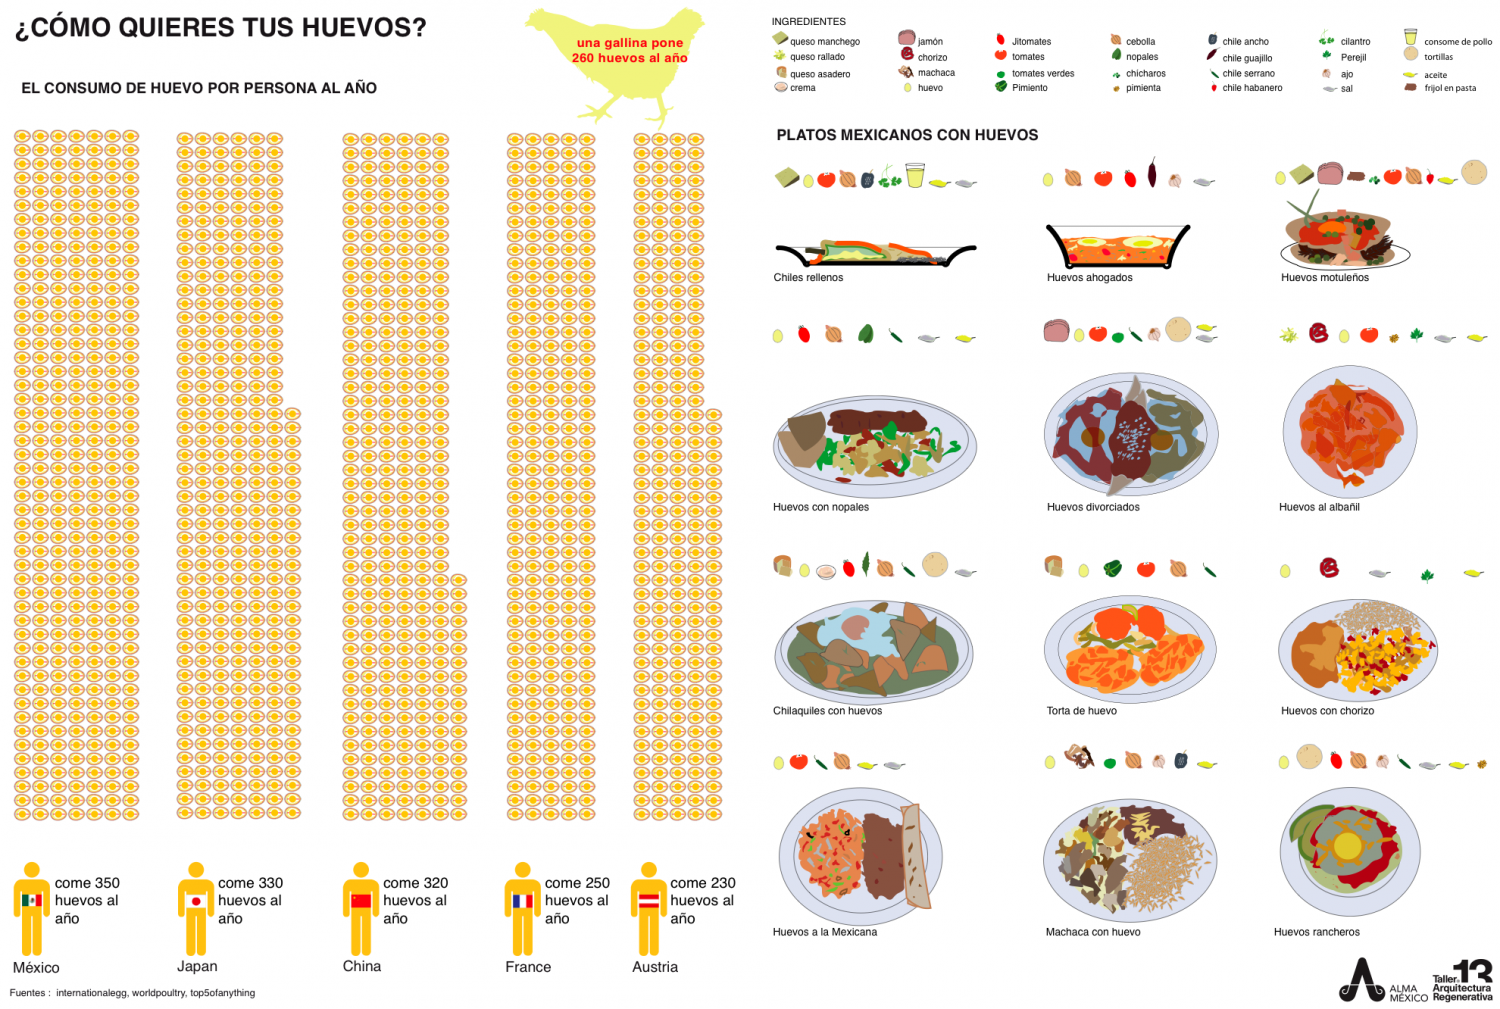 Egg consumption per person per year Infographic